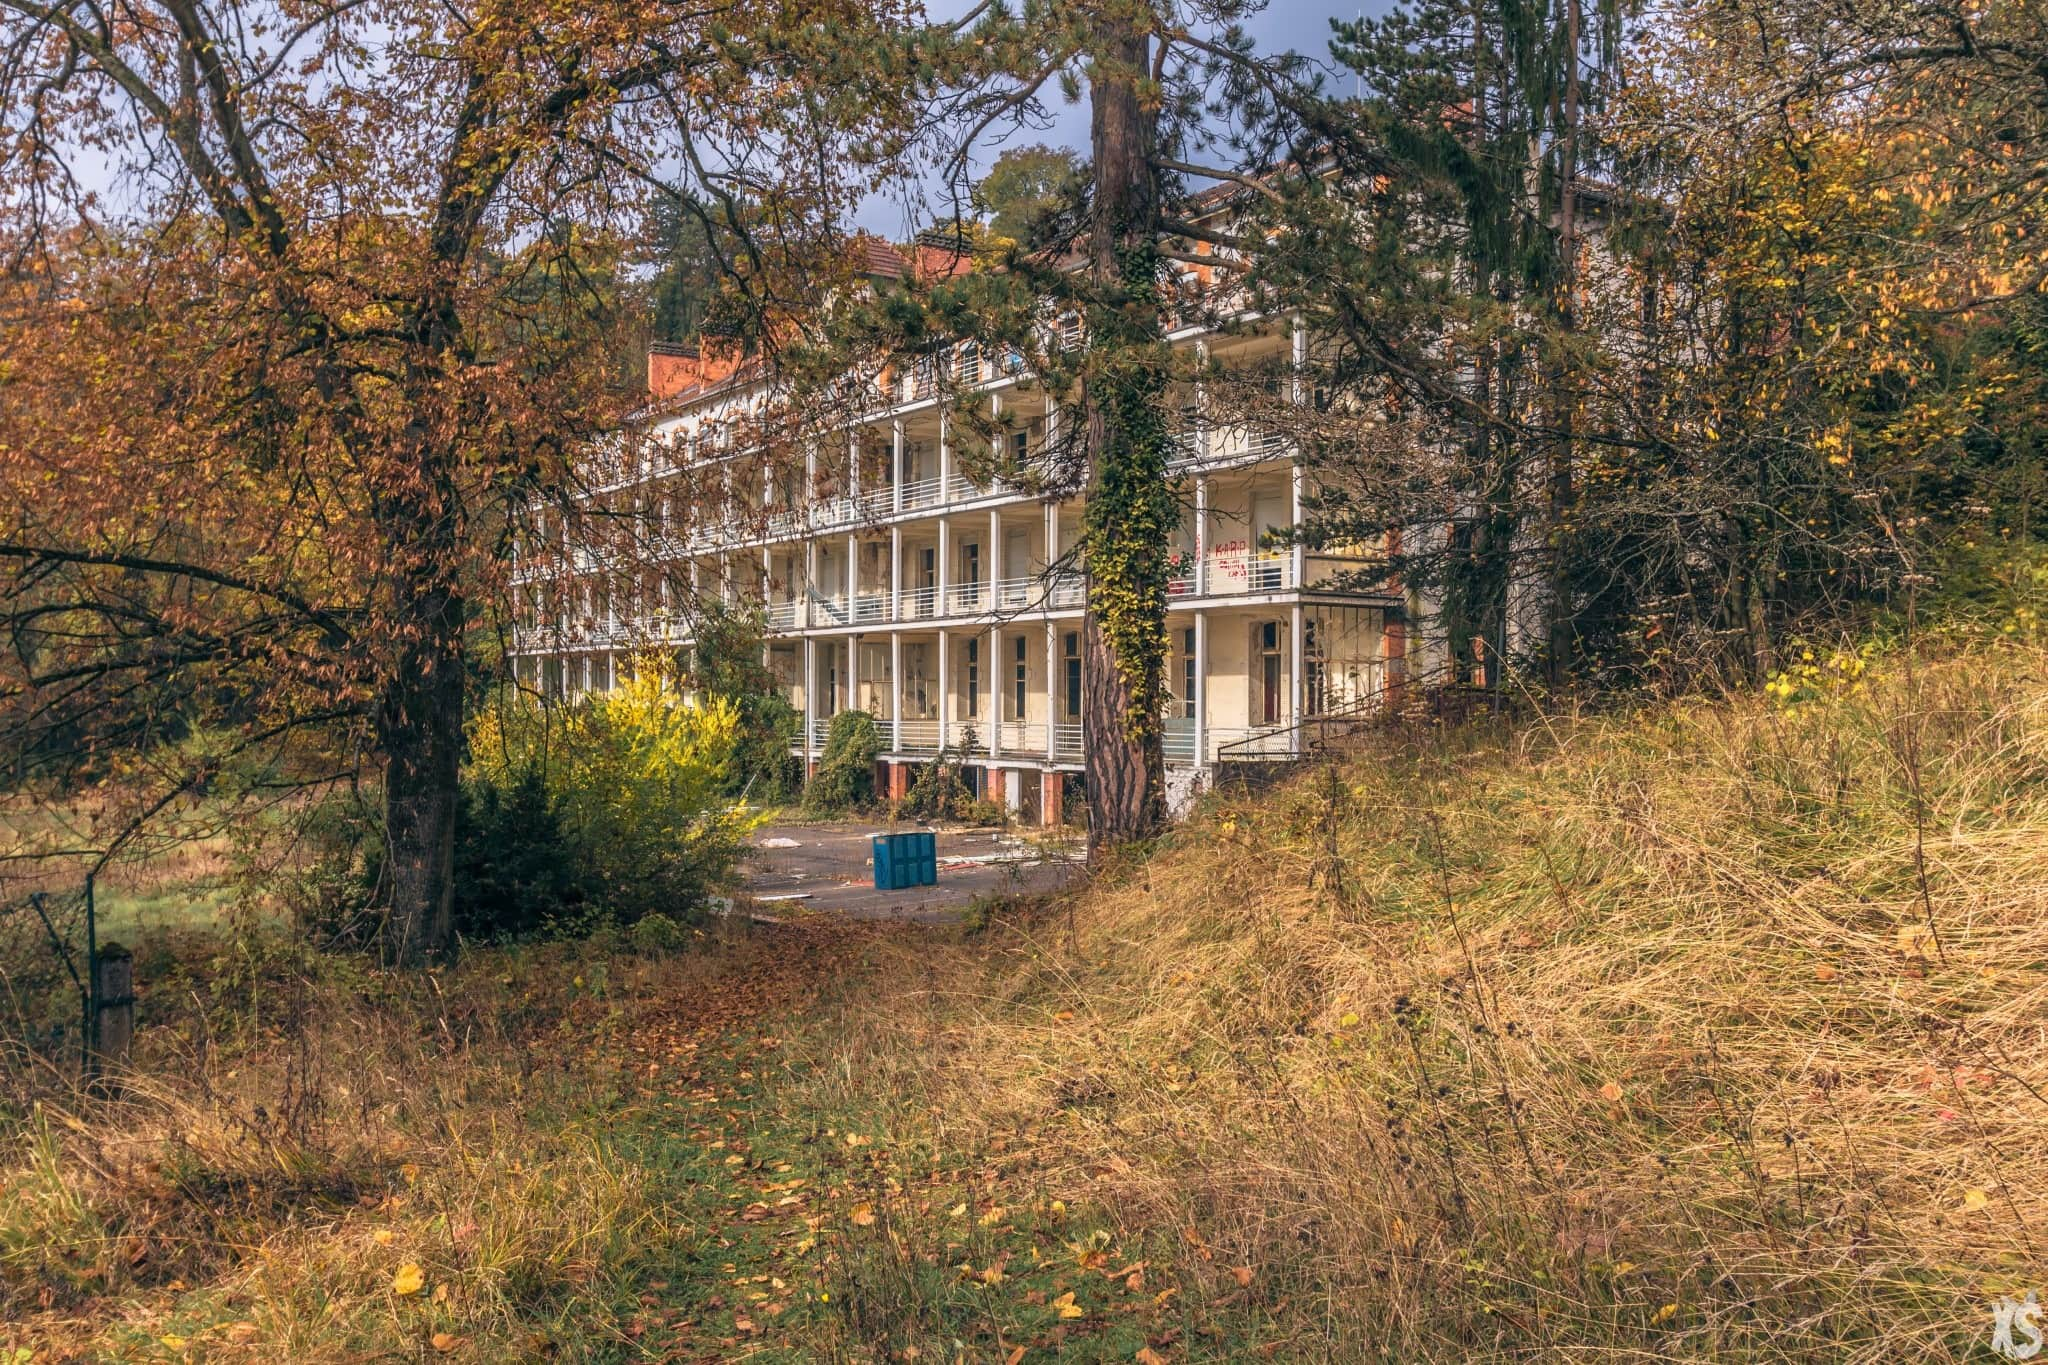 sanatorium-lay-saint-christophe-18